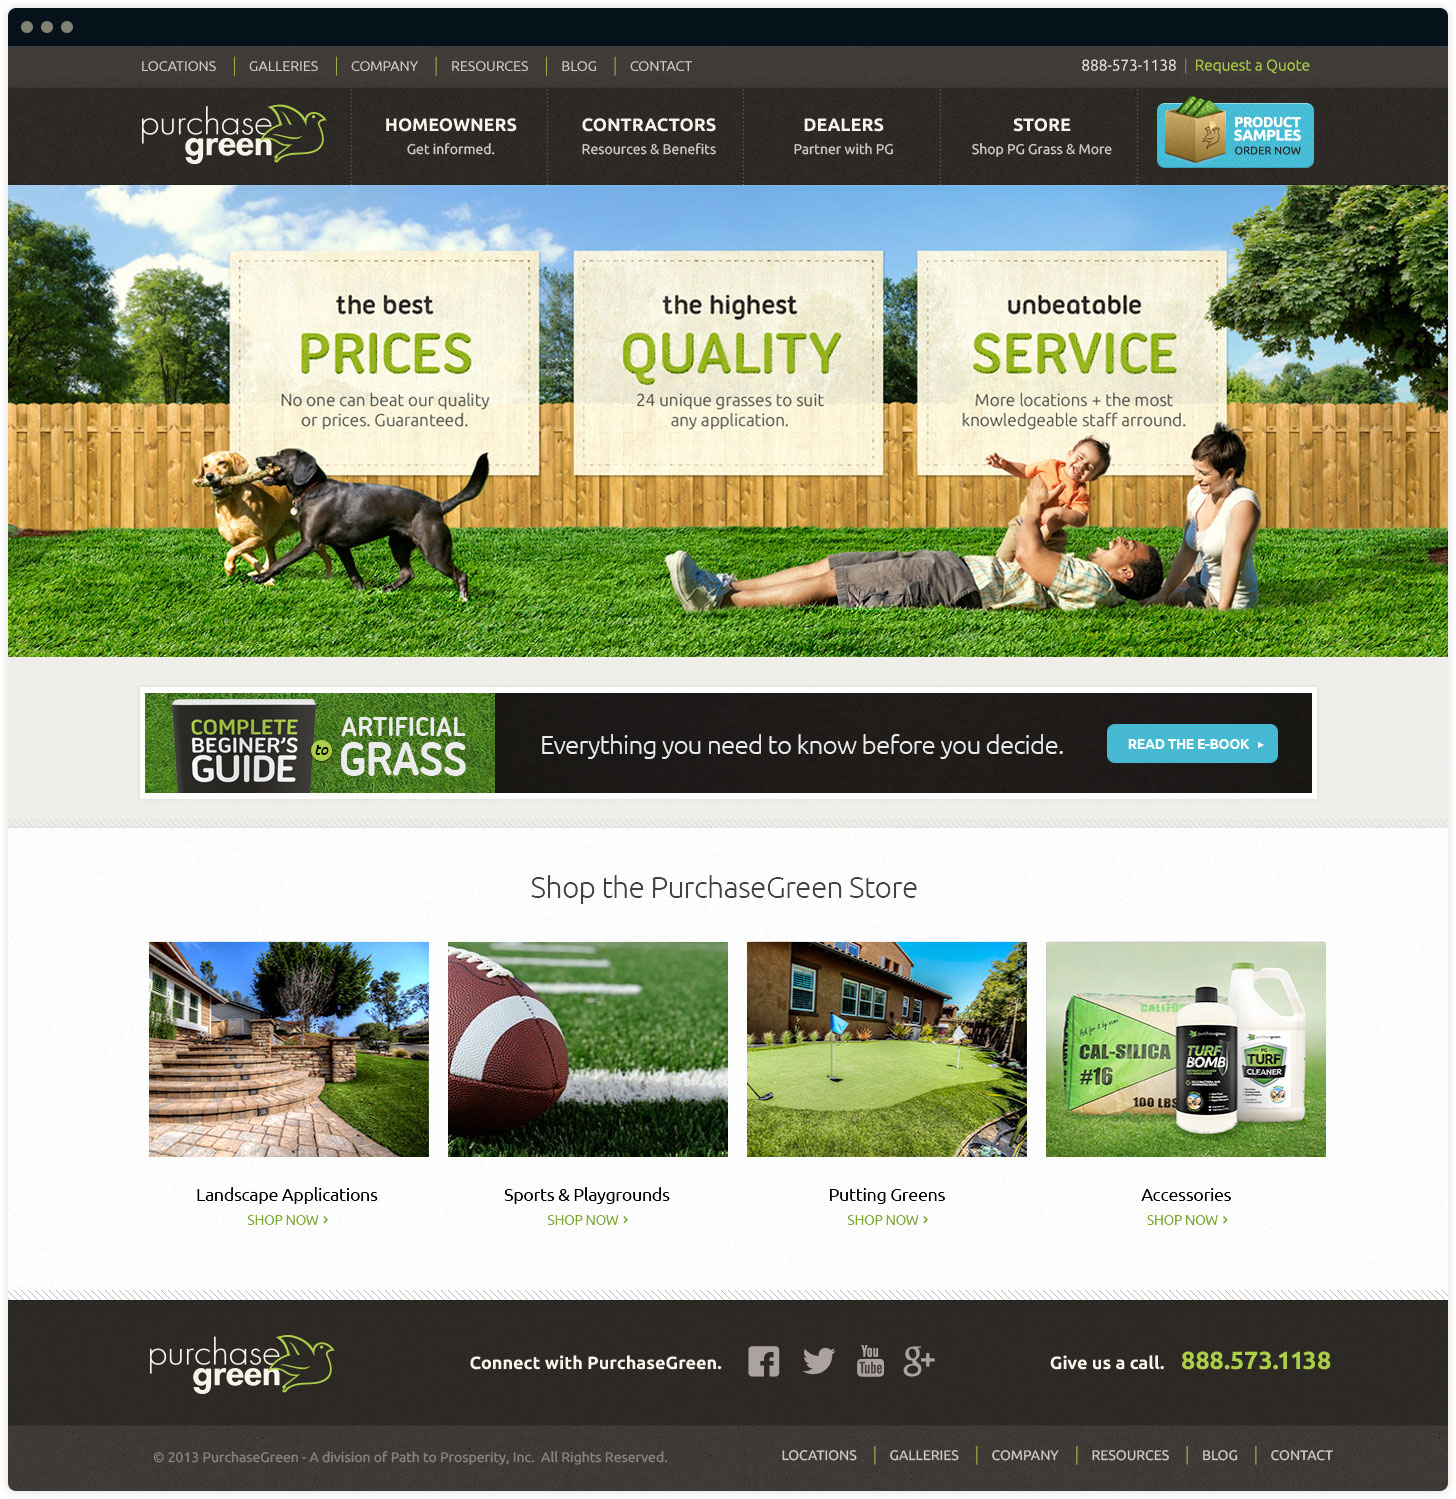 Purchase Green Homepage Design by Salted Stone